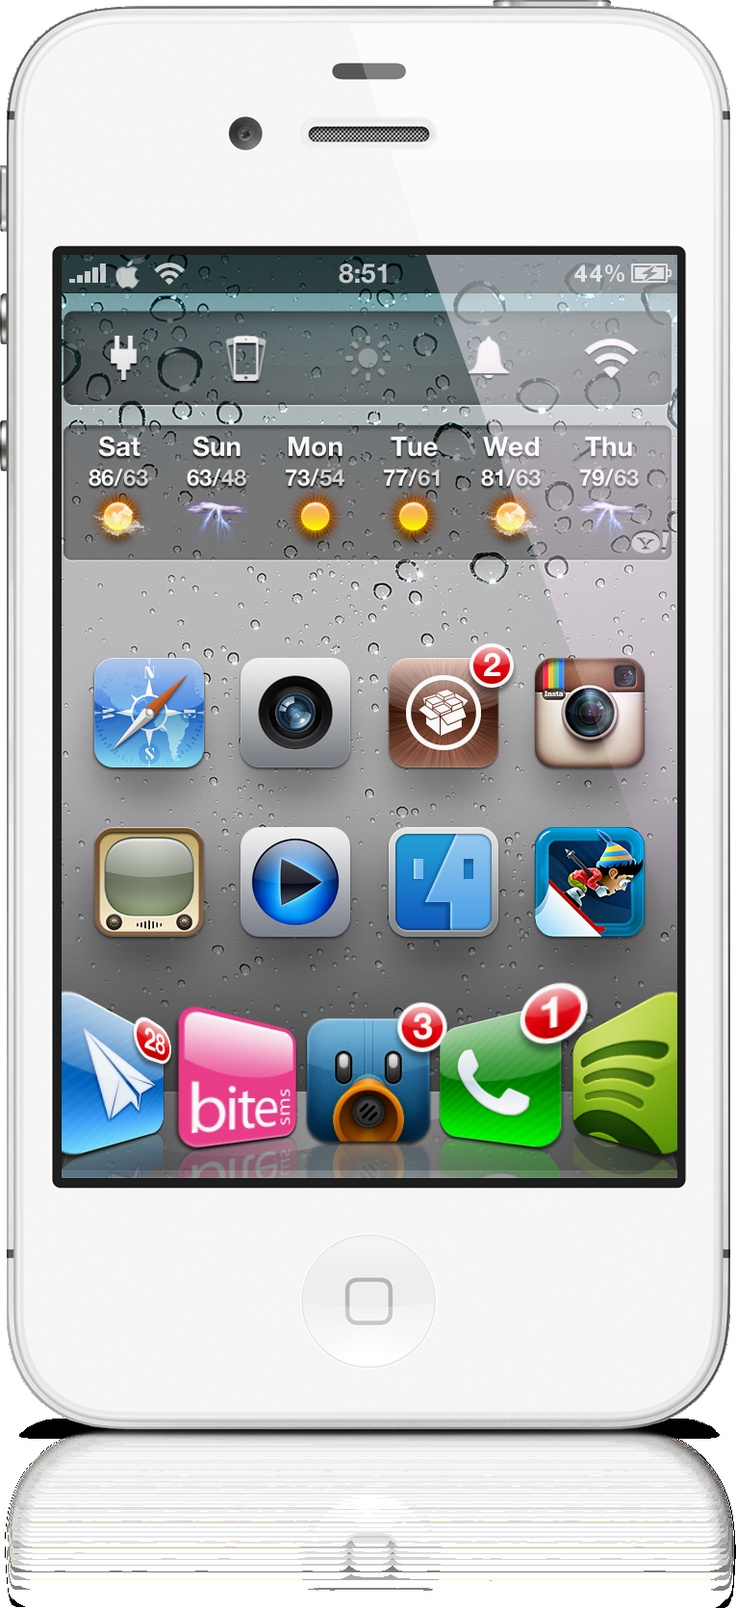 Dashboard X Allows iOS 5 Notifications Widgets On Your HomeScreen